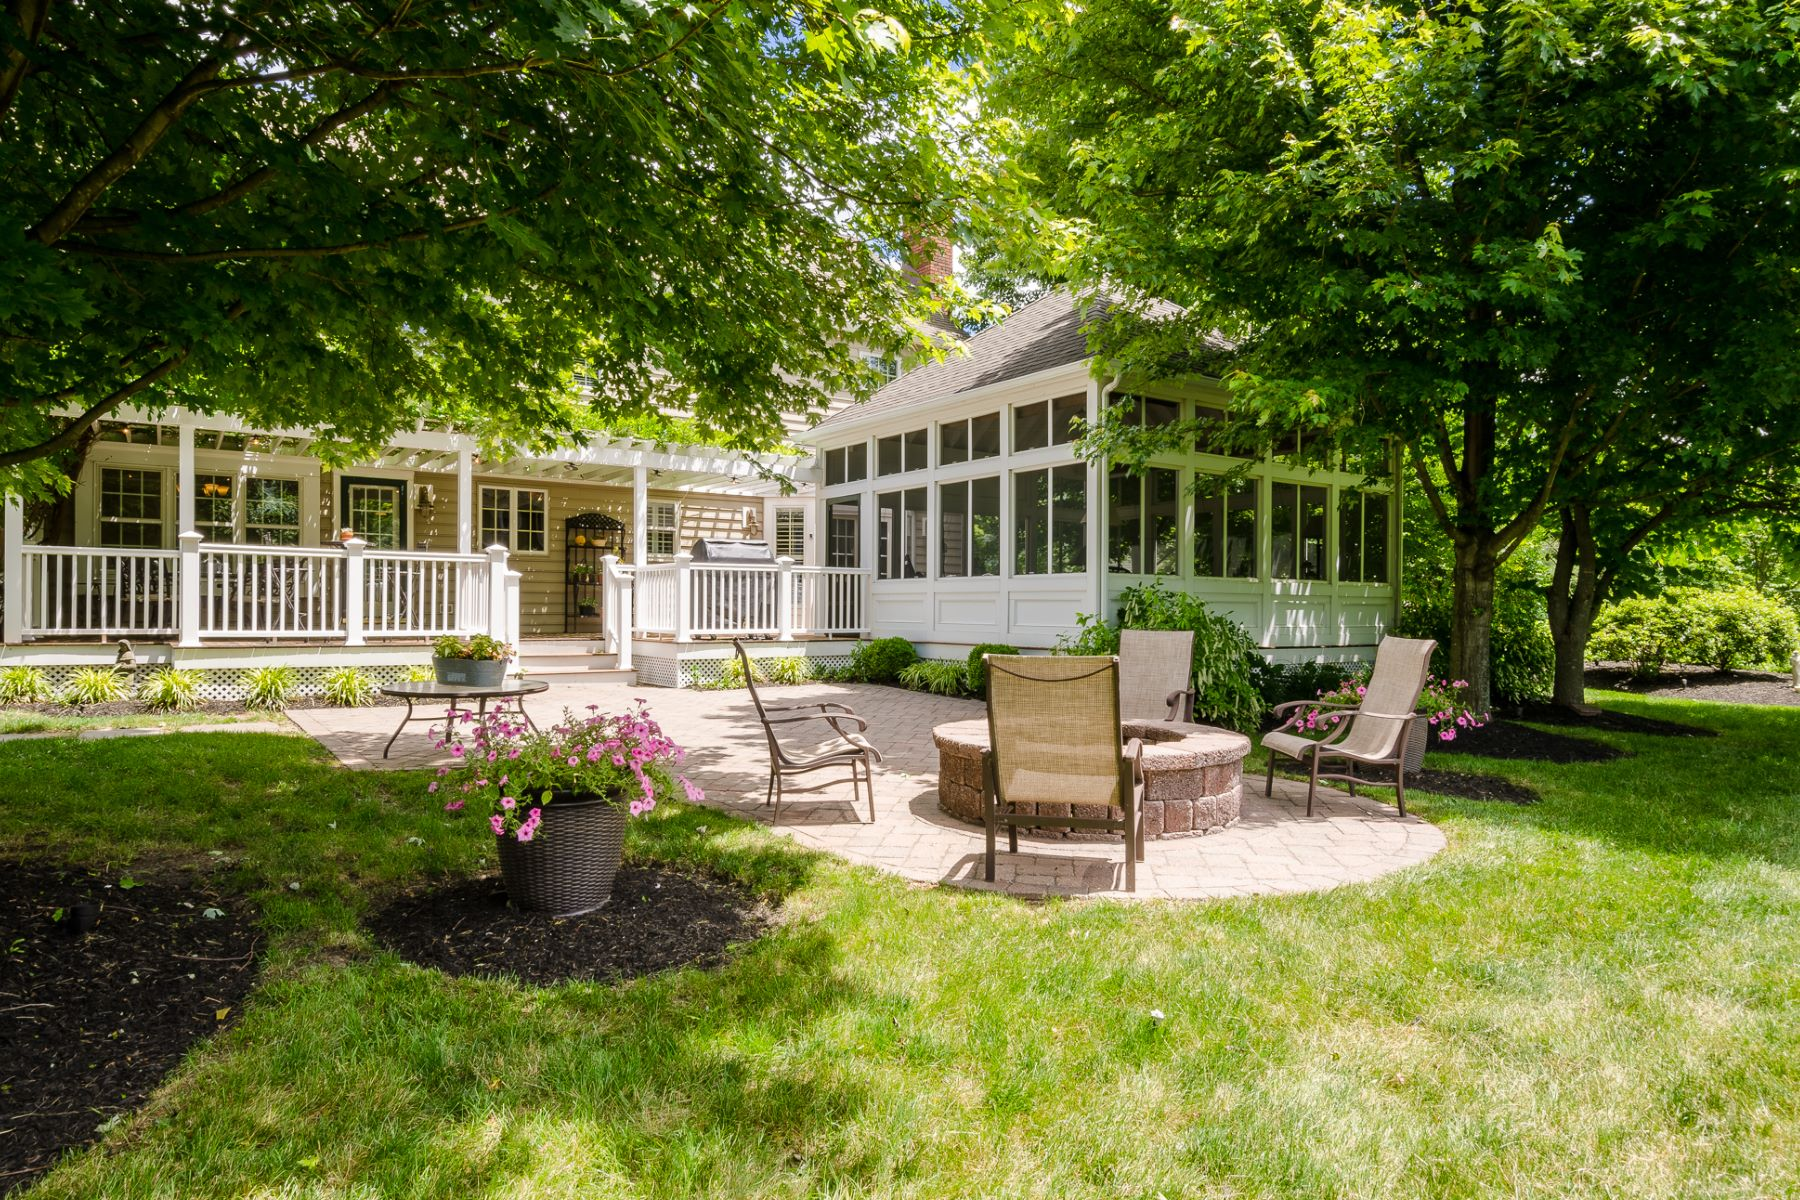 Additional photo for property listing at Regal Colonial with Beautiful Backyard Views 23 Parkview Road, Cranbury, New Jersey 08512 Vereinigte Staaten